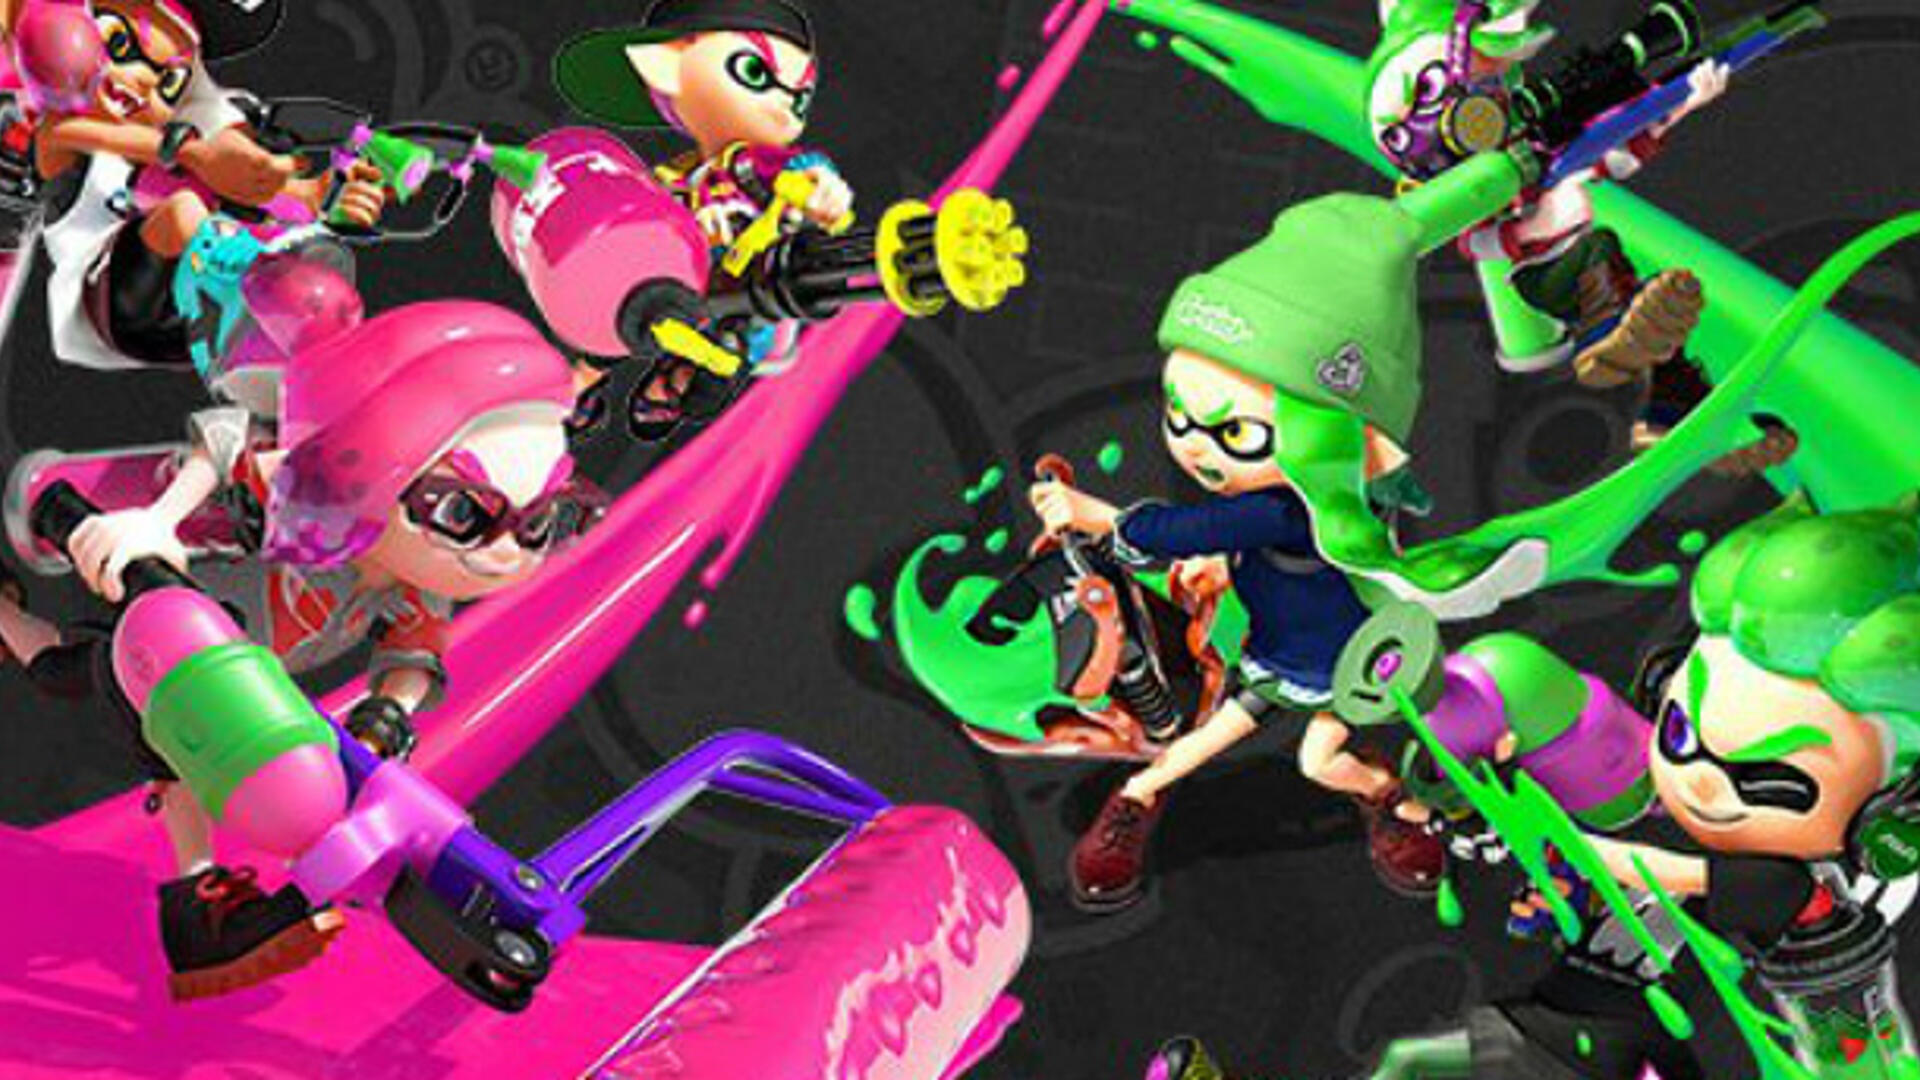 Splatoon 2 Weapons Guide - Best Weapons, Clothing and Gear